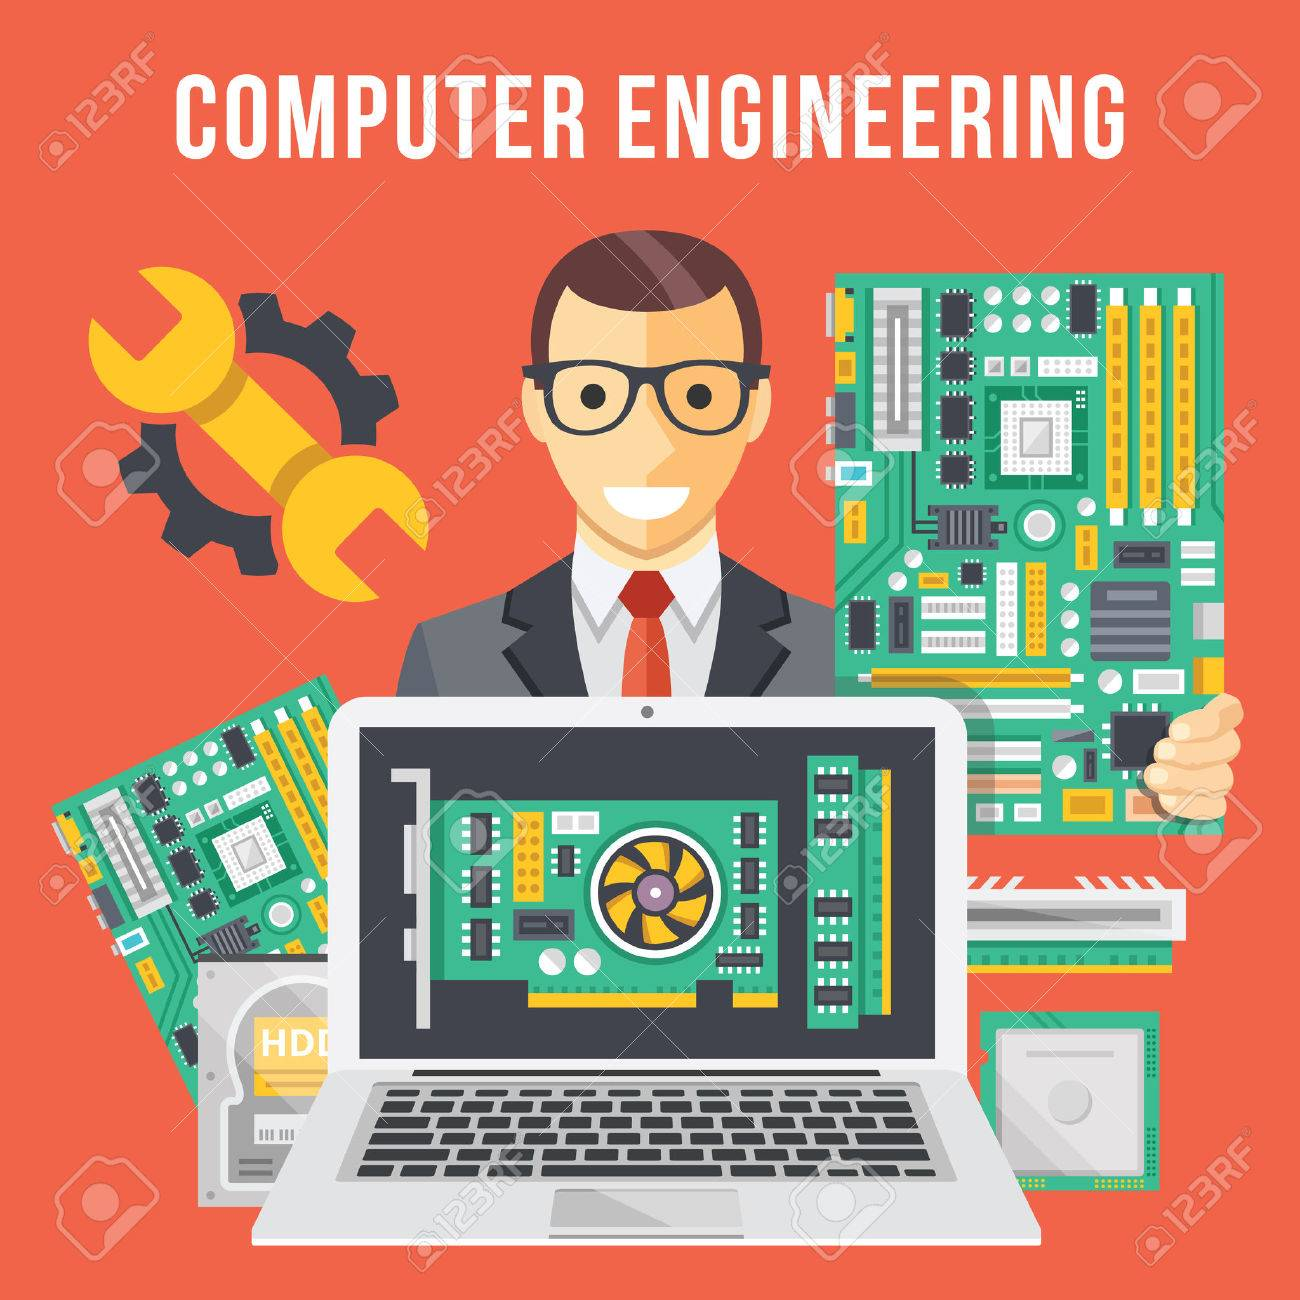 Computer engineering flat illustration concept.